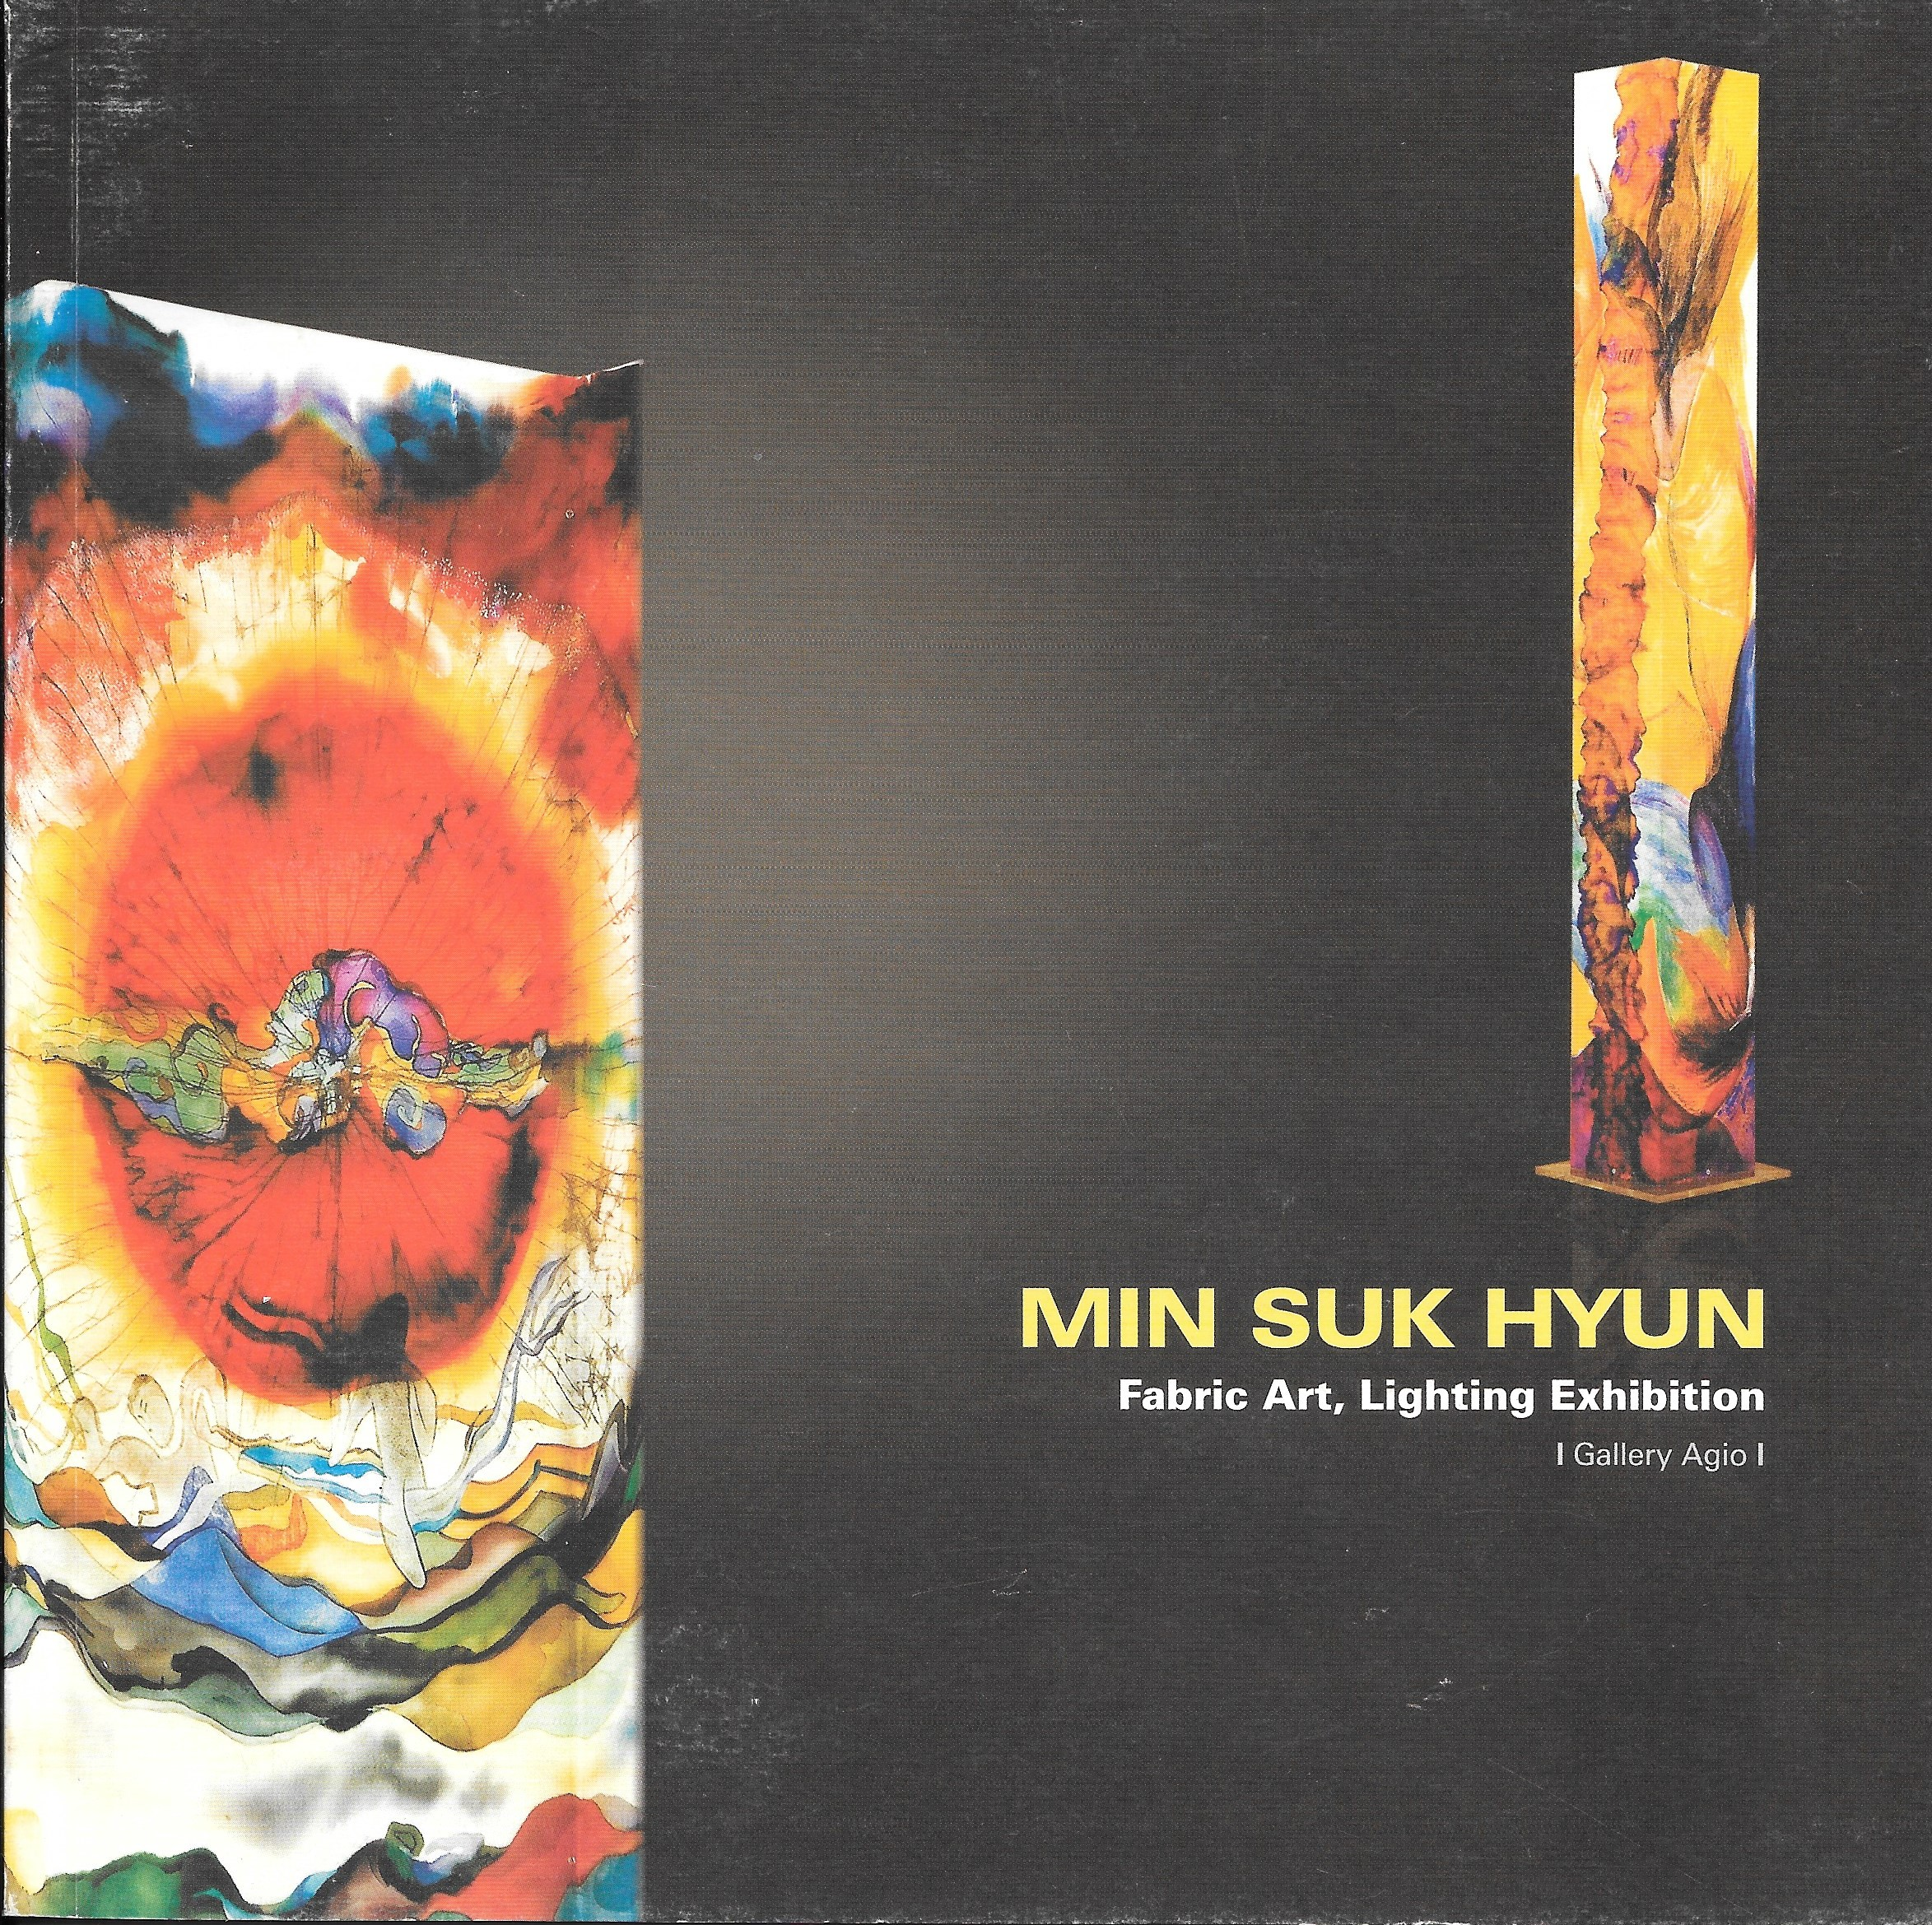 2006 Min sukhyun-Fabric Art, Lighting Exhibition